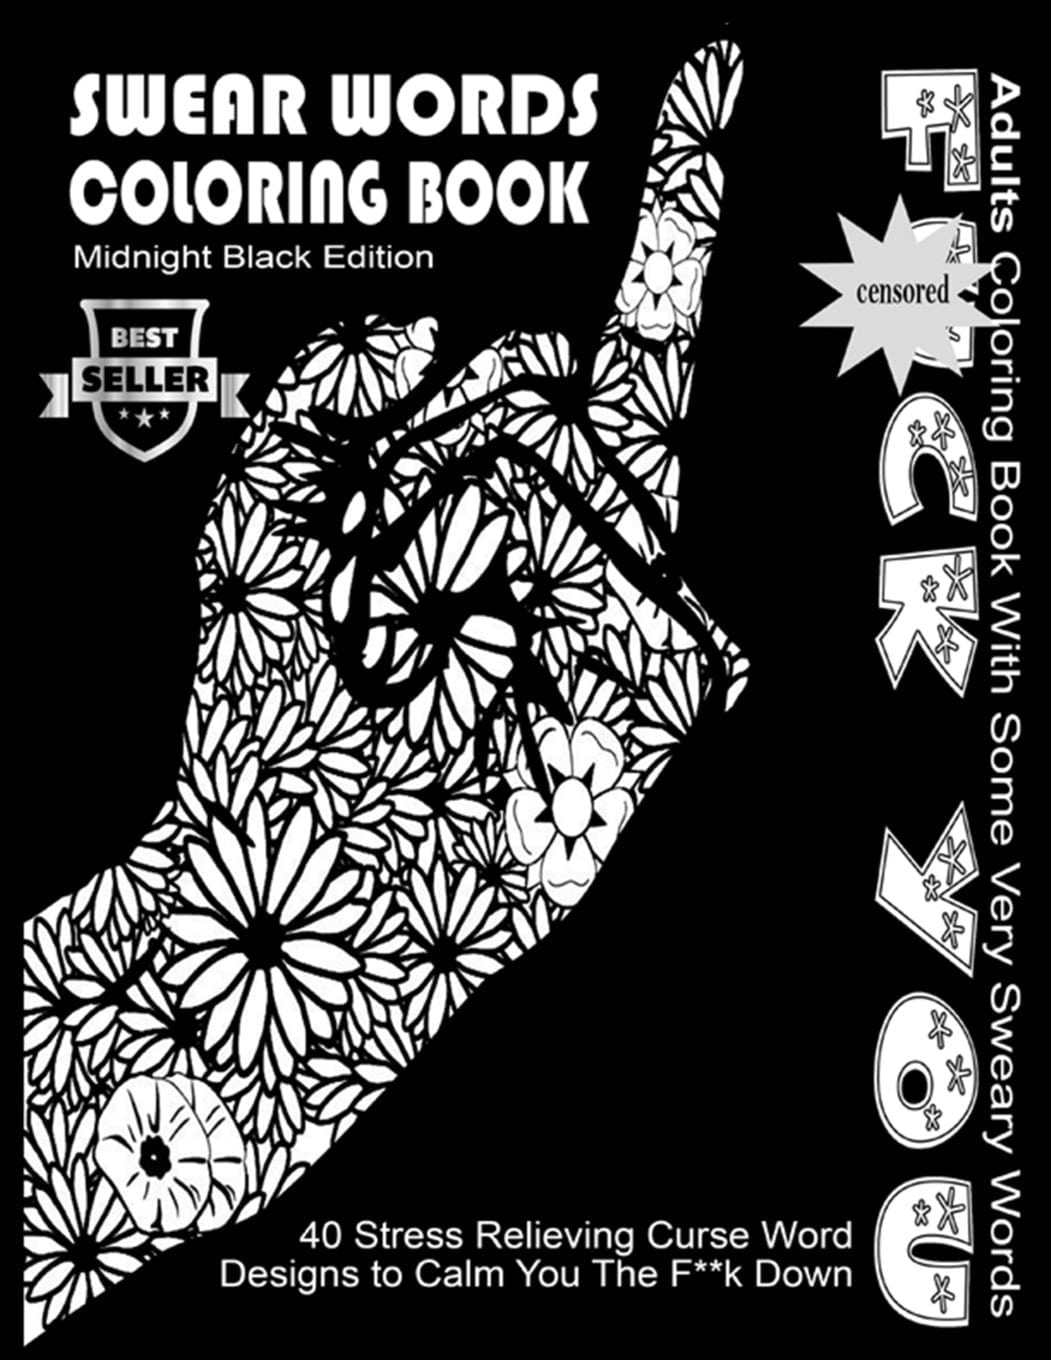 Coloring Books 71fysbznp6l Amazon Com Swear Word Book Midnight